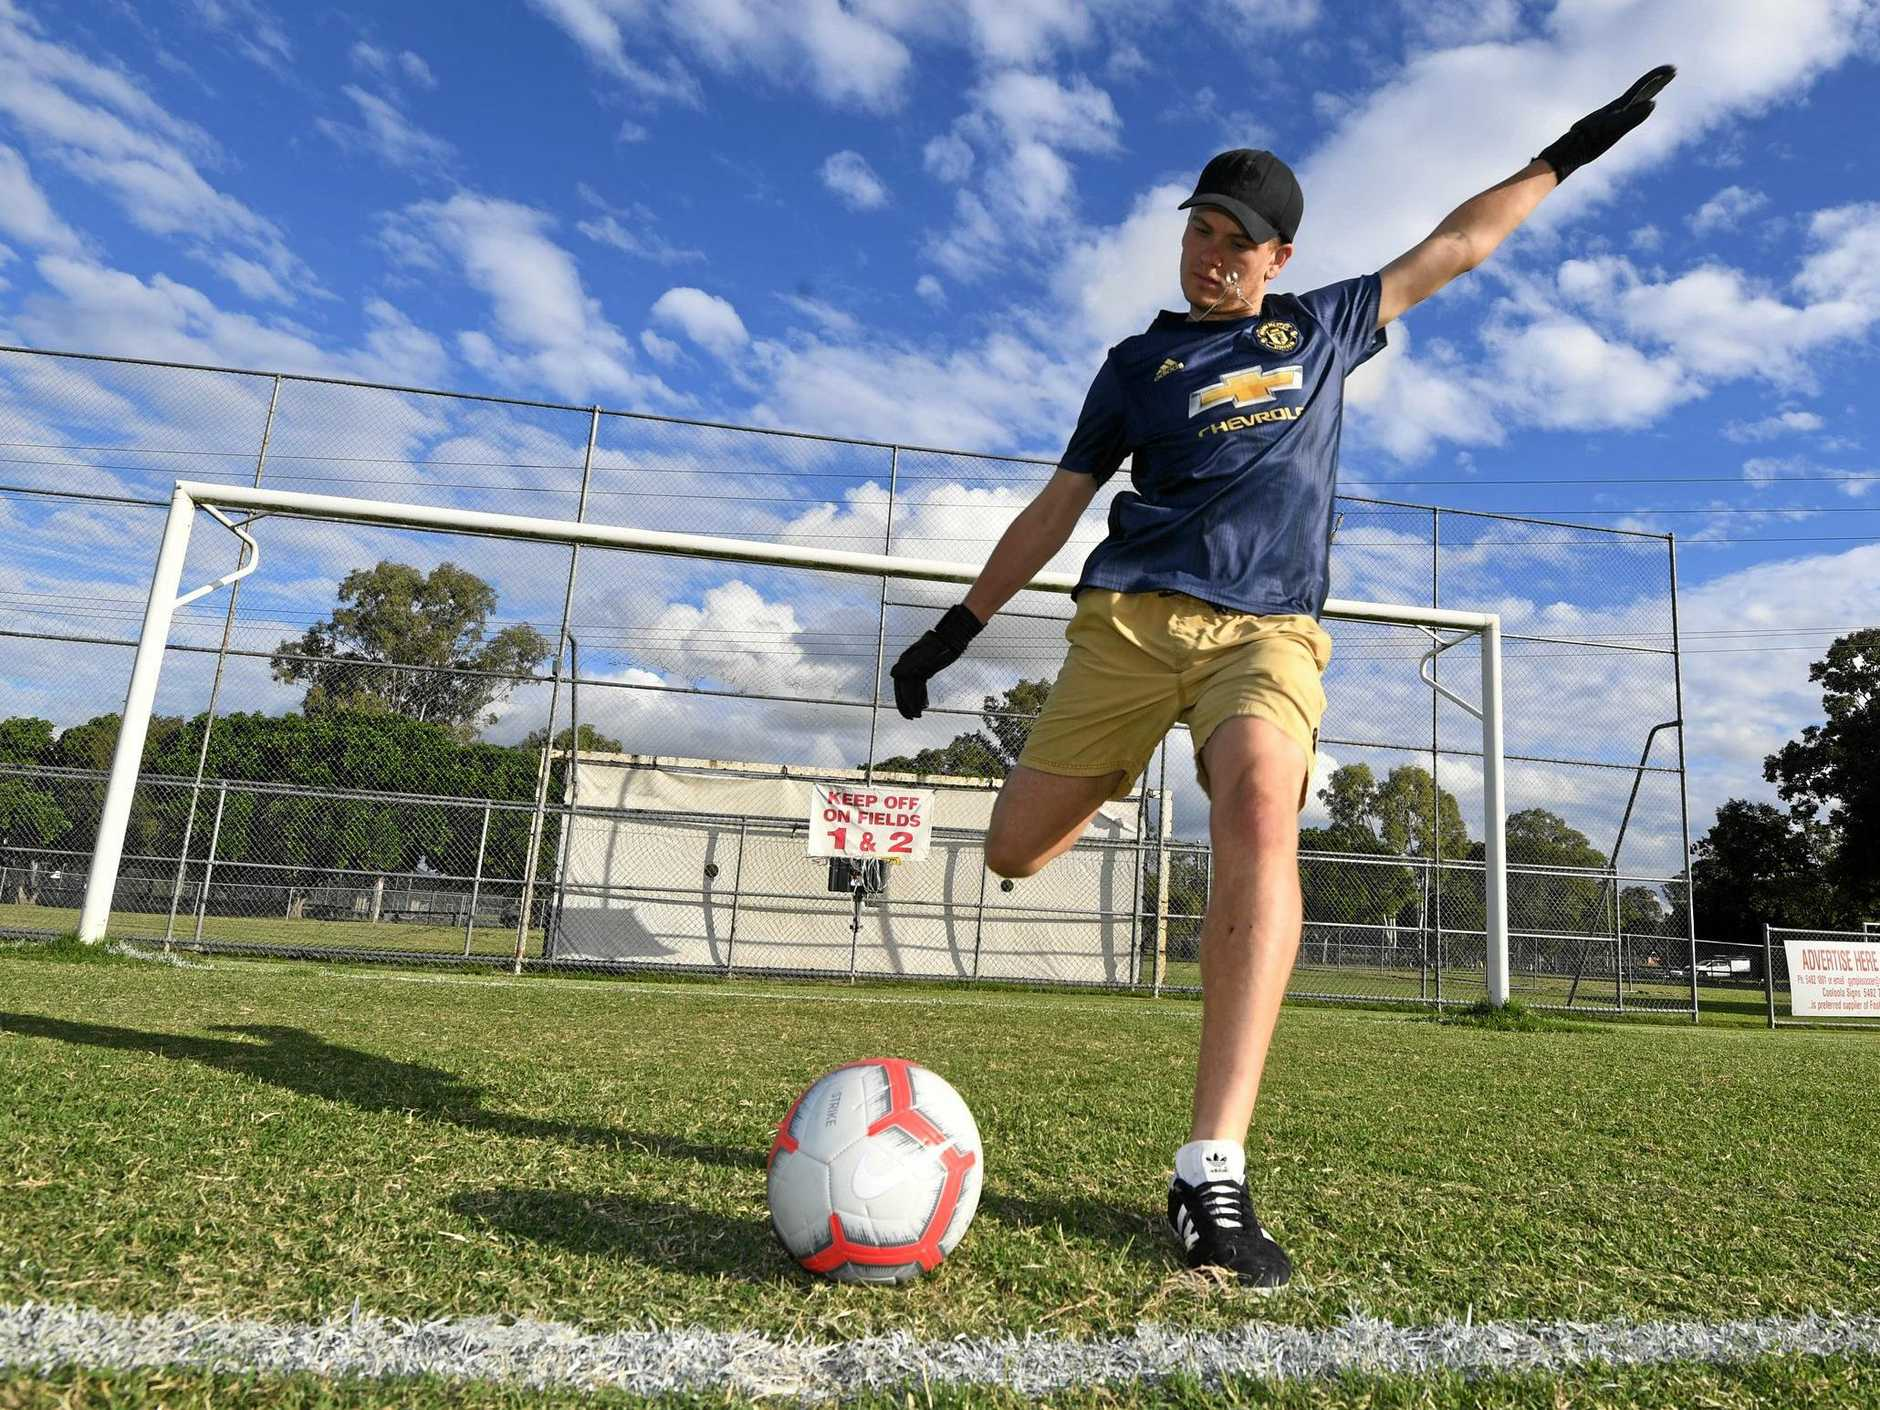 AROUND THE WORLD: Gympie goalkeeper Eligh Williams is heading to the USA with the aim of one day playing in the Premier League, and for Australia.